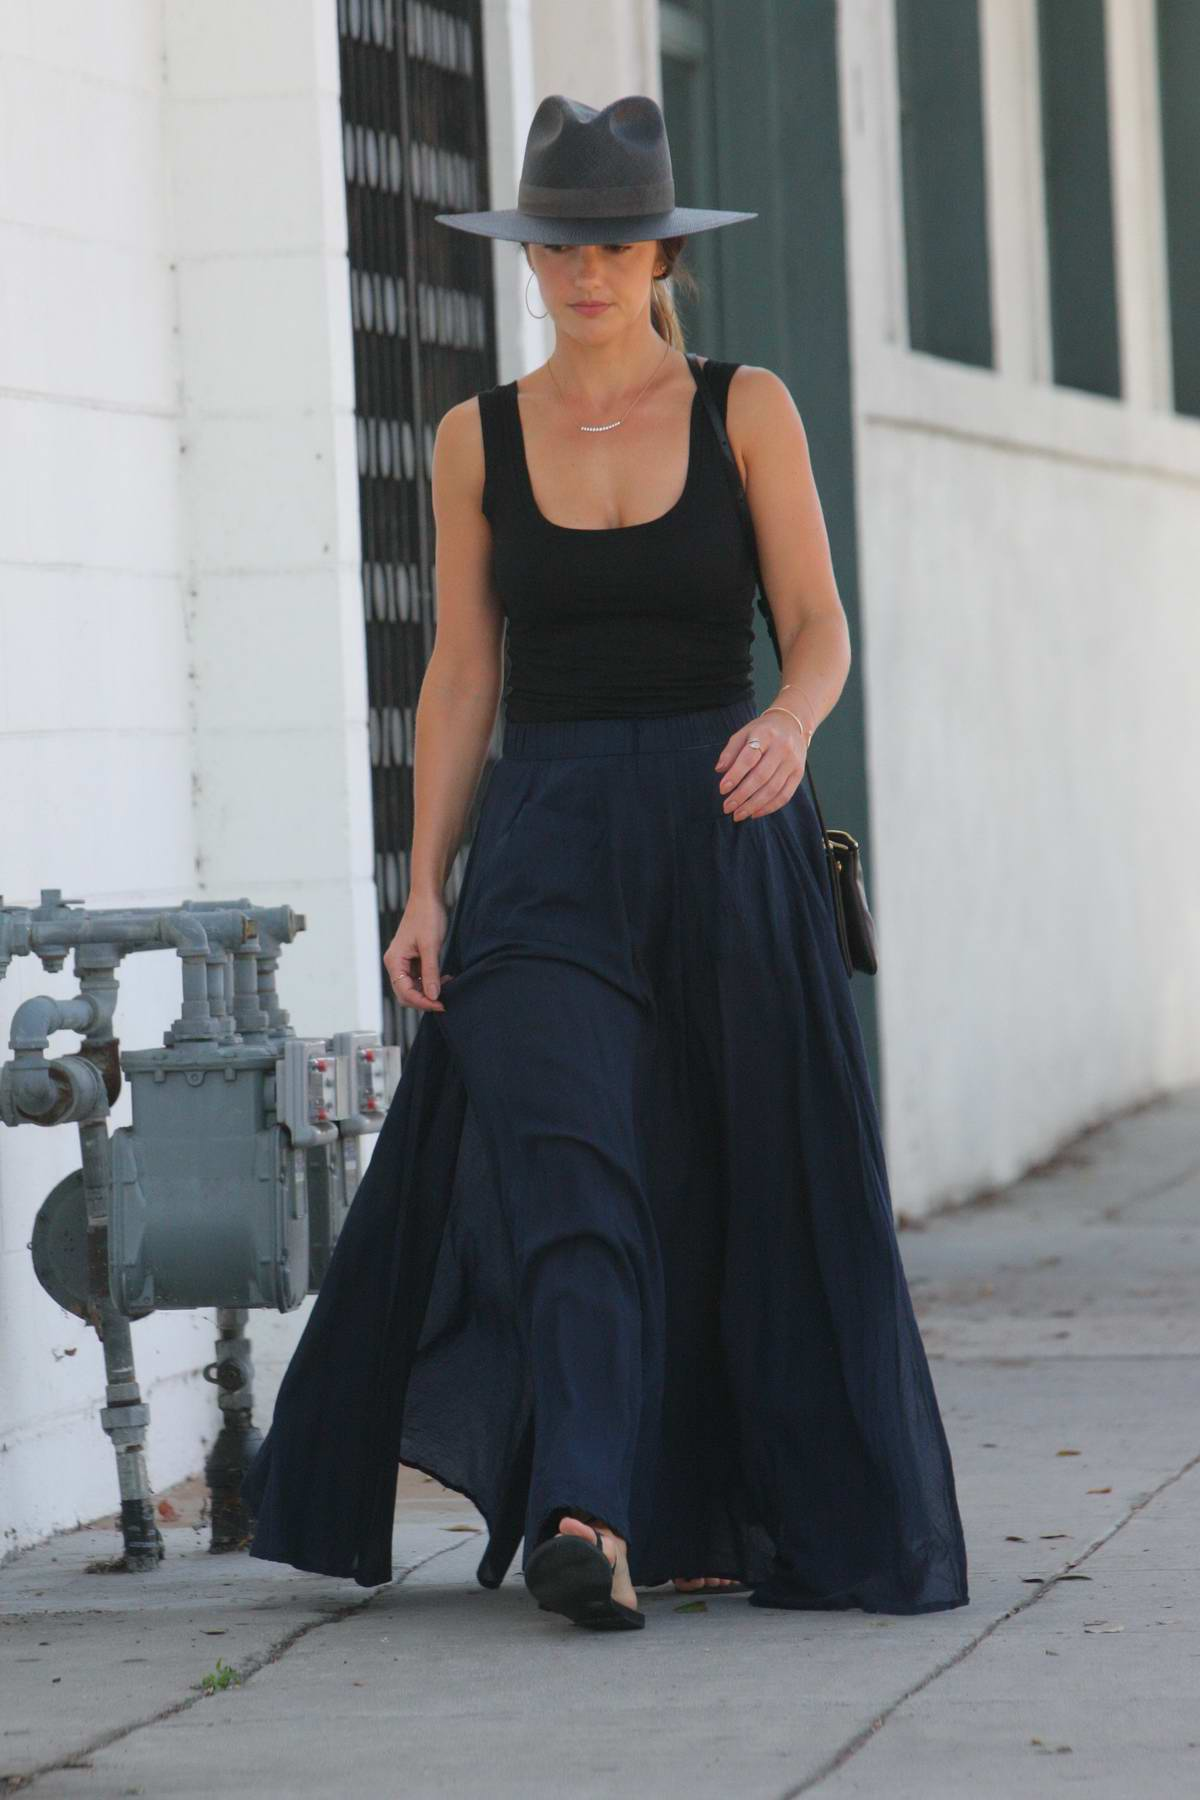 Minka Kelly wears a black tank top and long blue skirt with a hat while out in Beverly Hills, Los Angeles